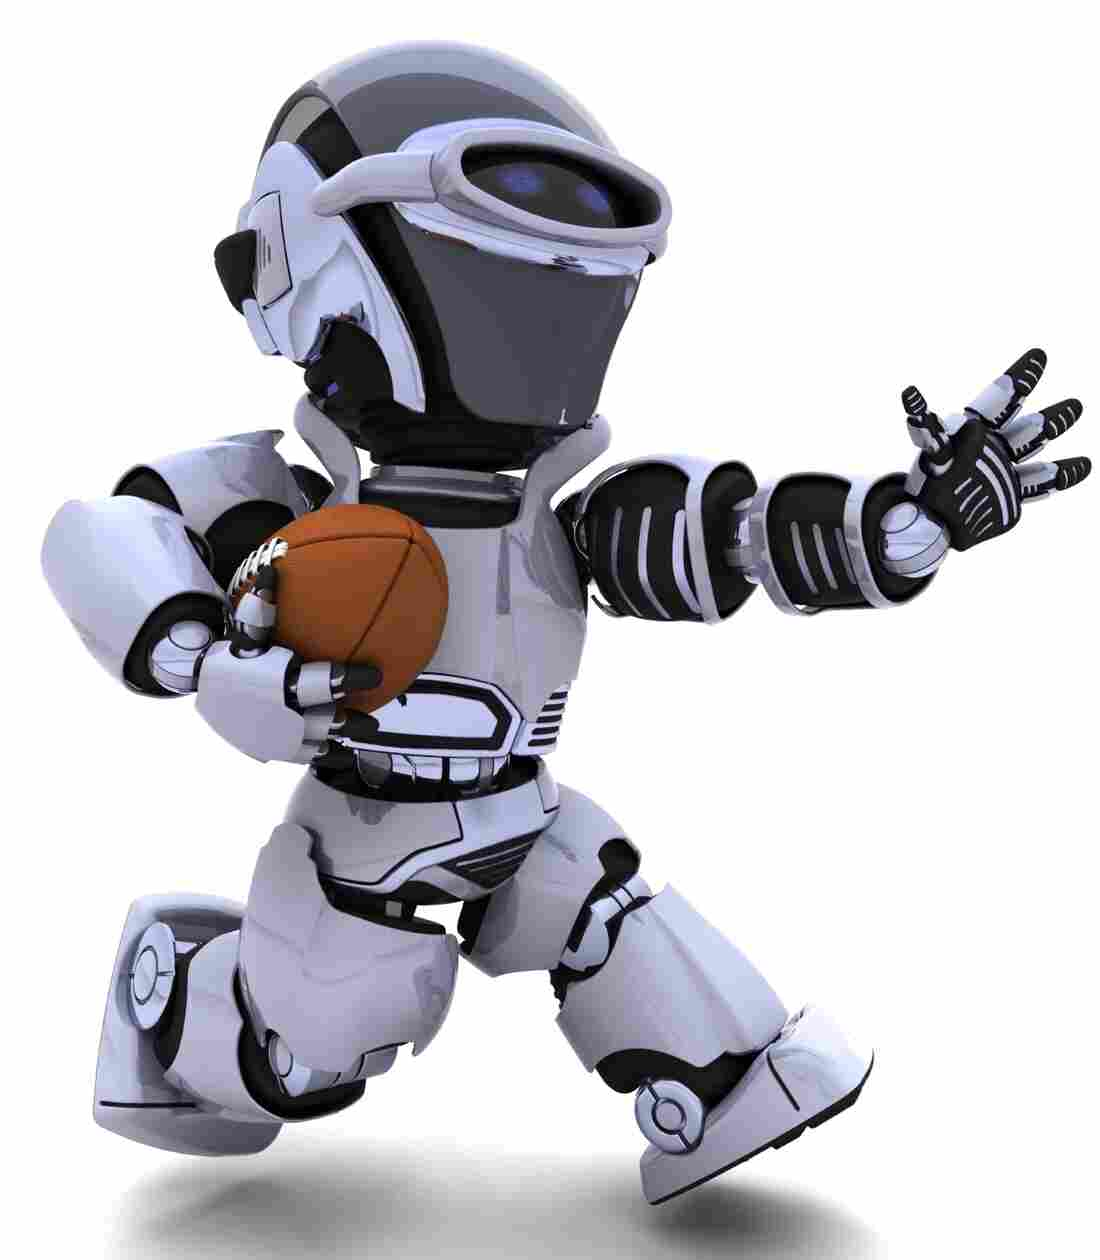 A 3-D rendering of a robot playing American football.